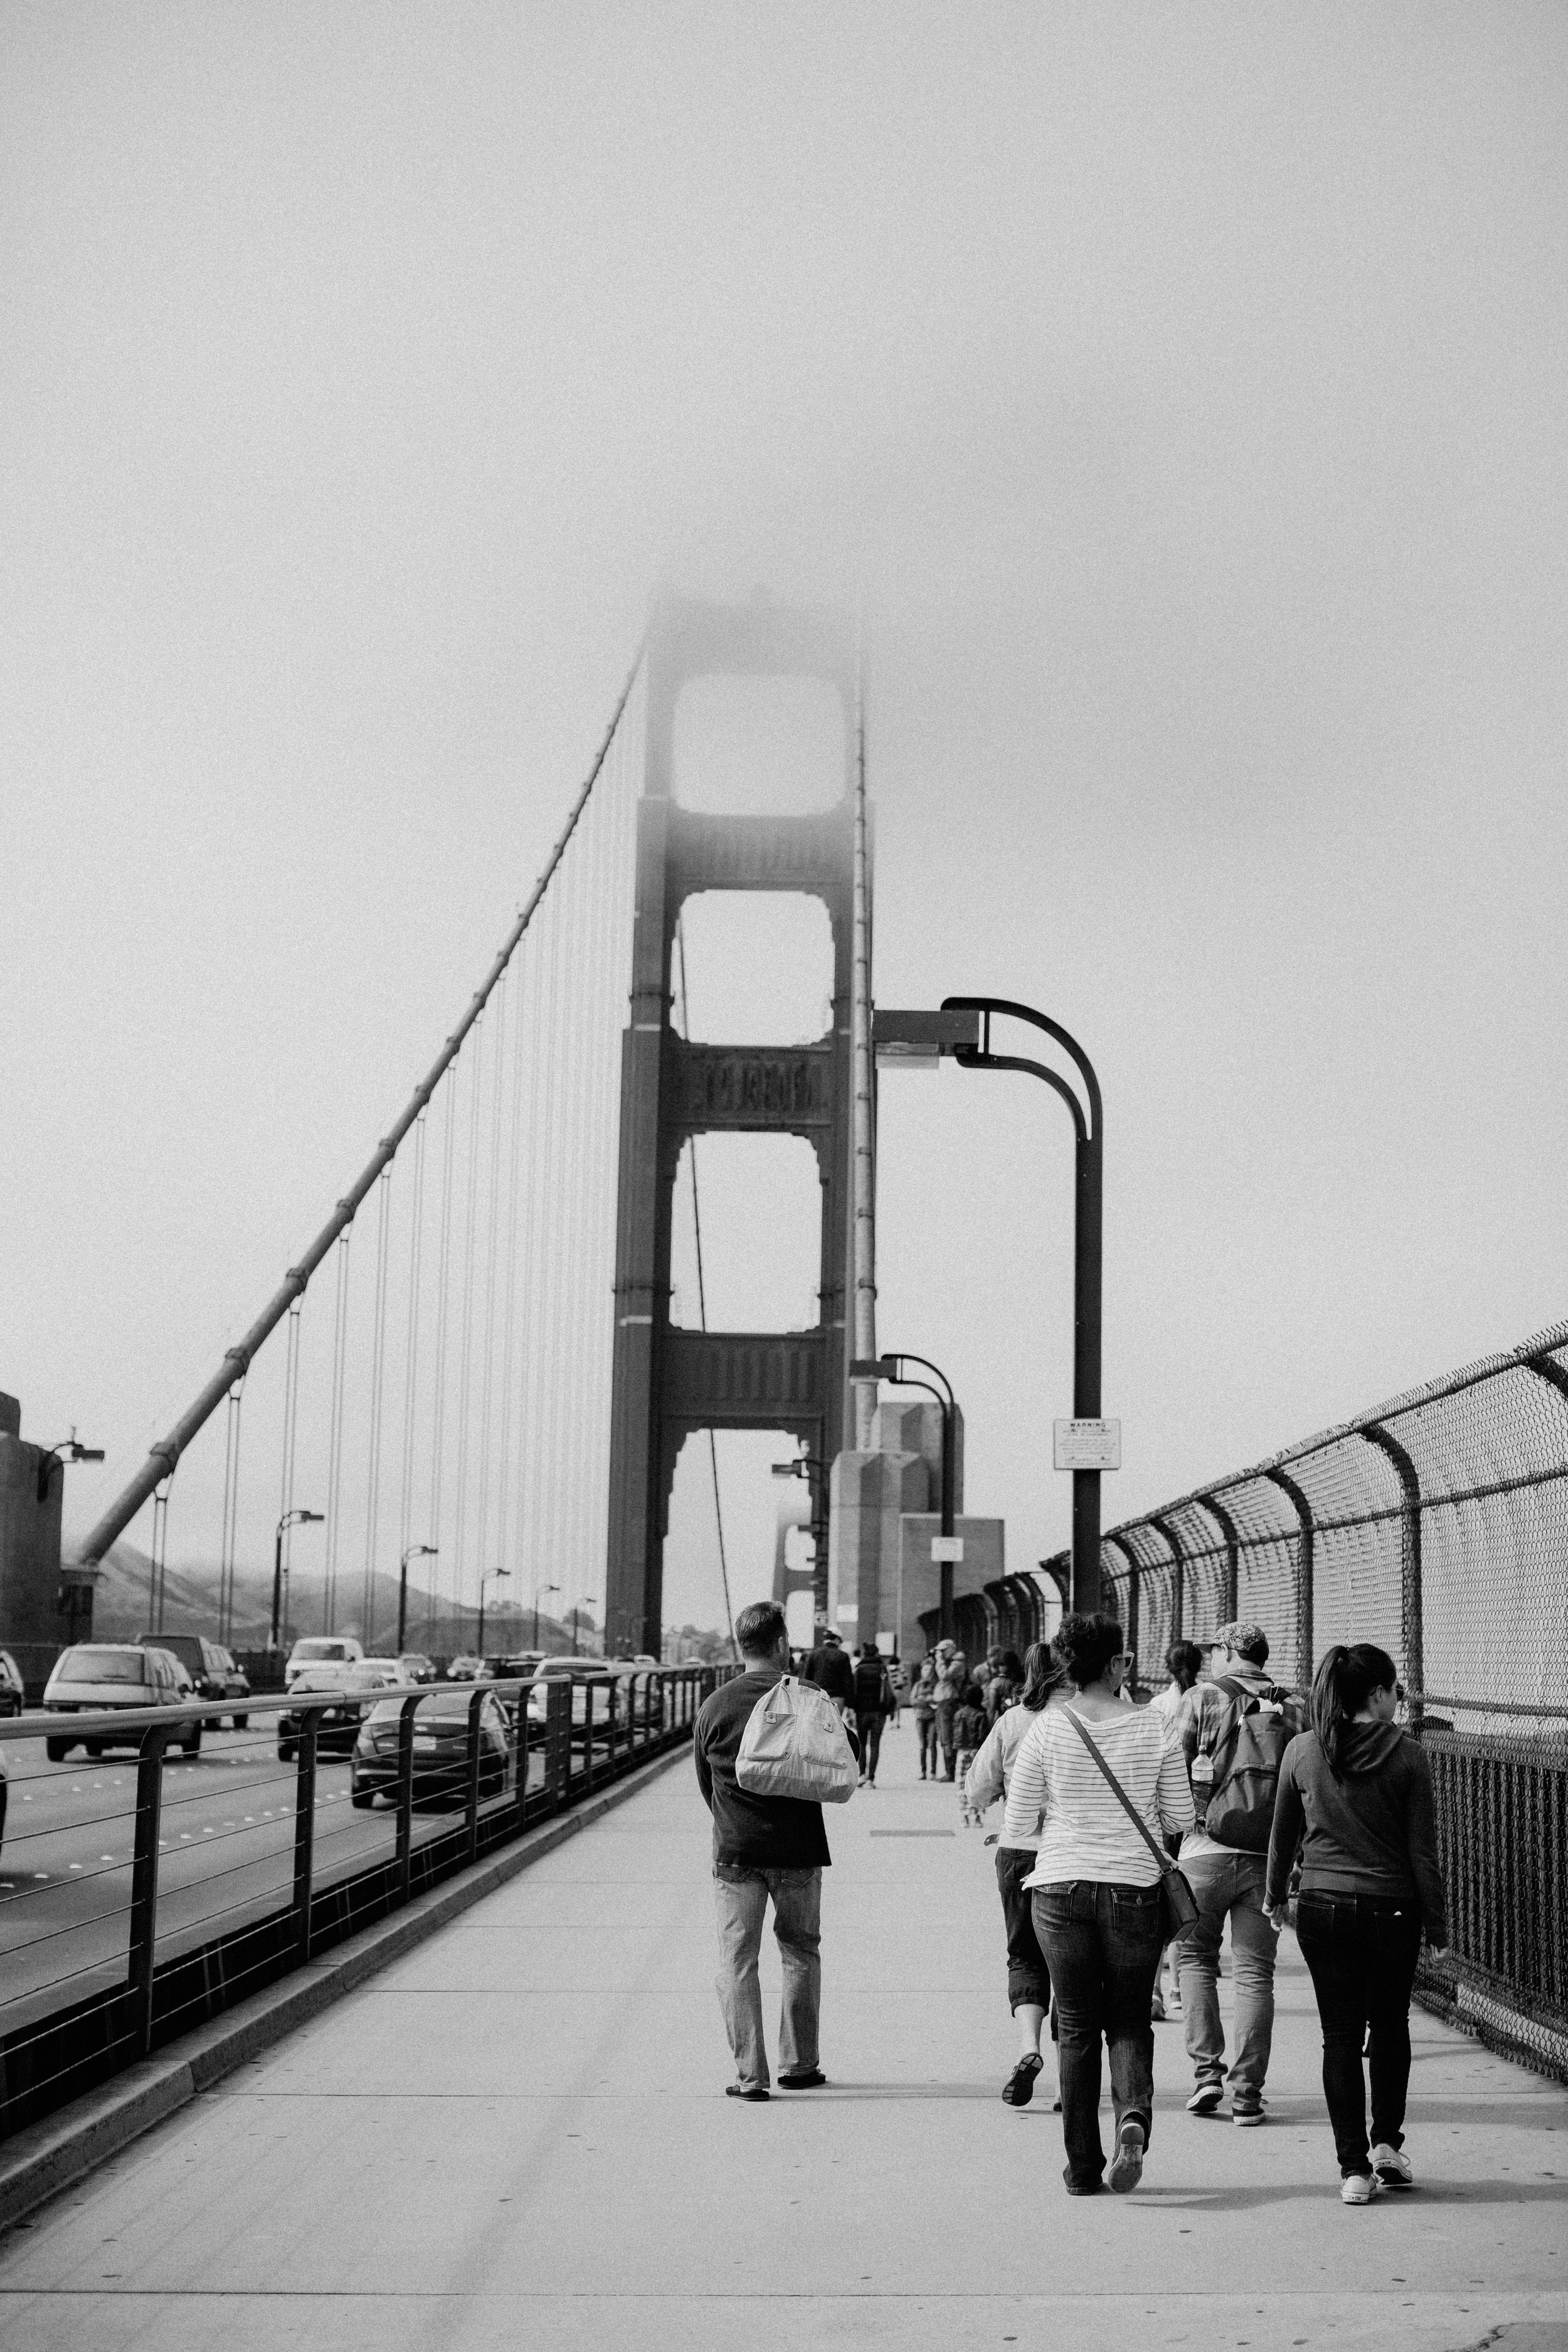 sanfrancisco-1177.jpg